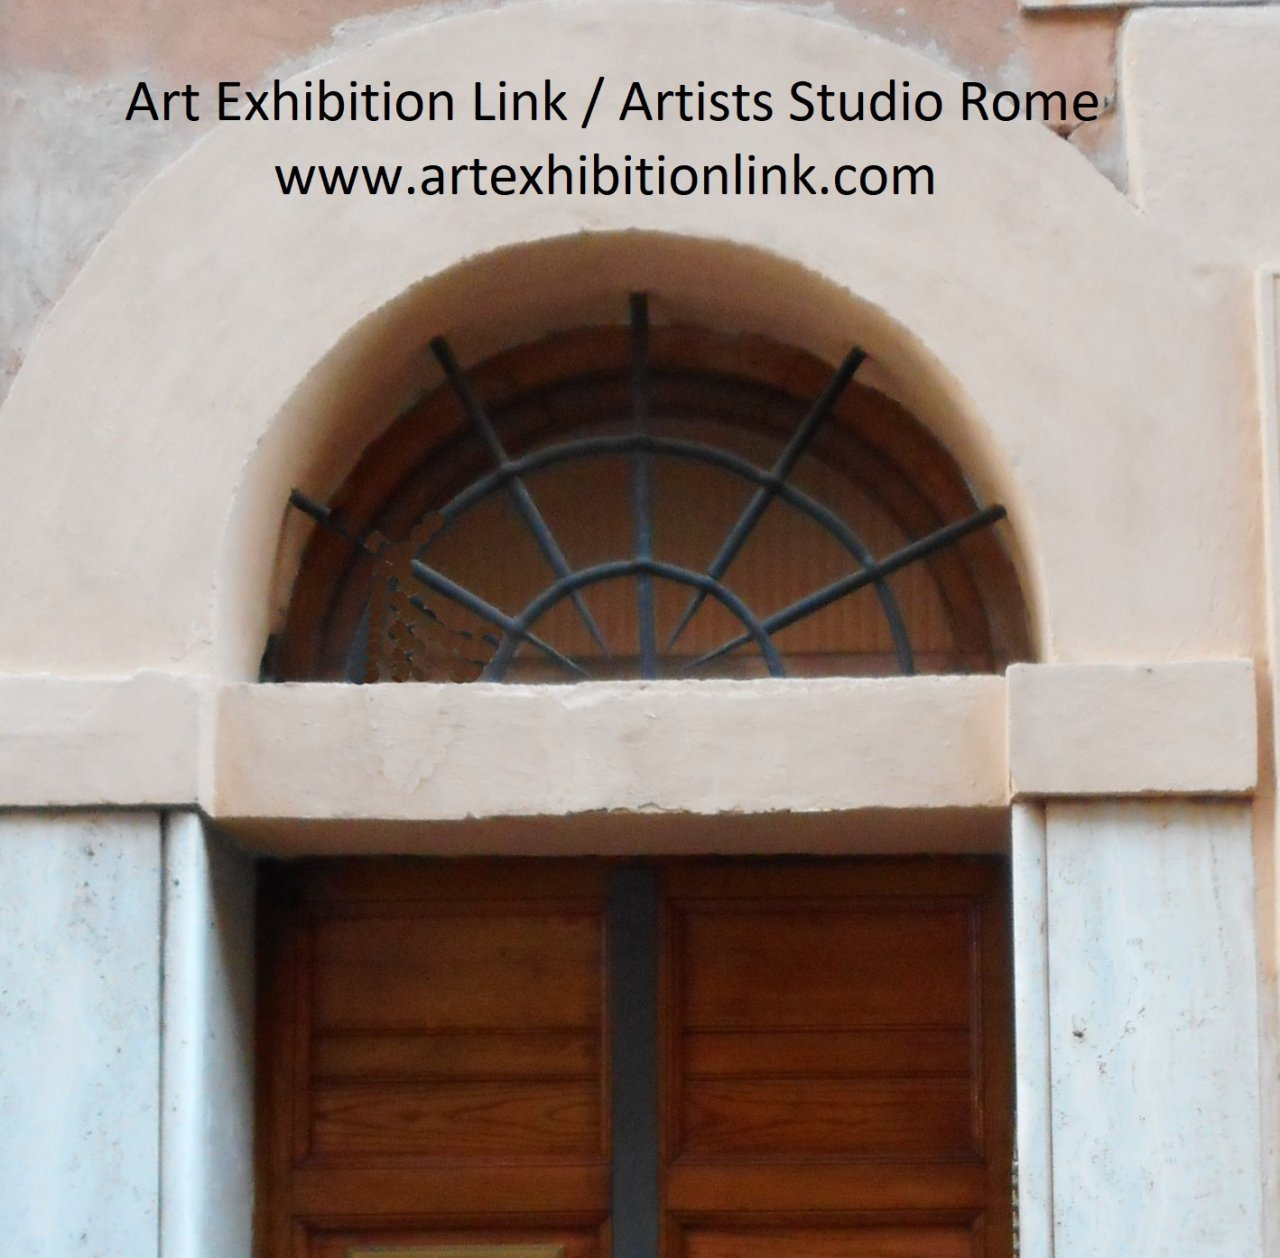 Art Exhibition Link / Artists Studio Roma